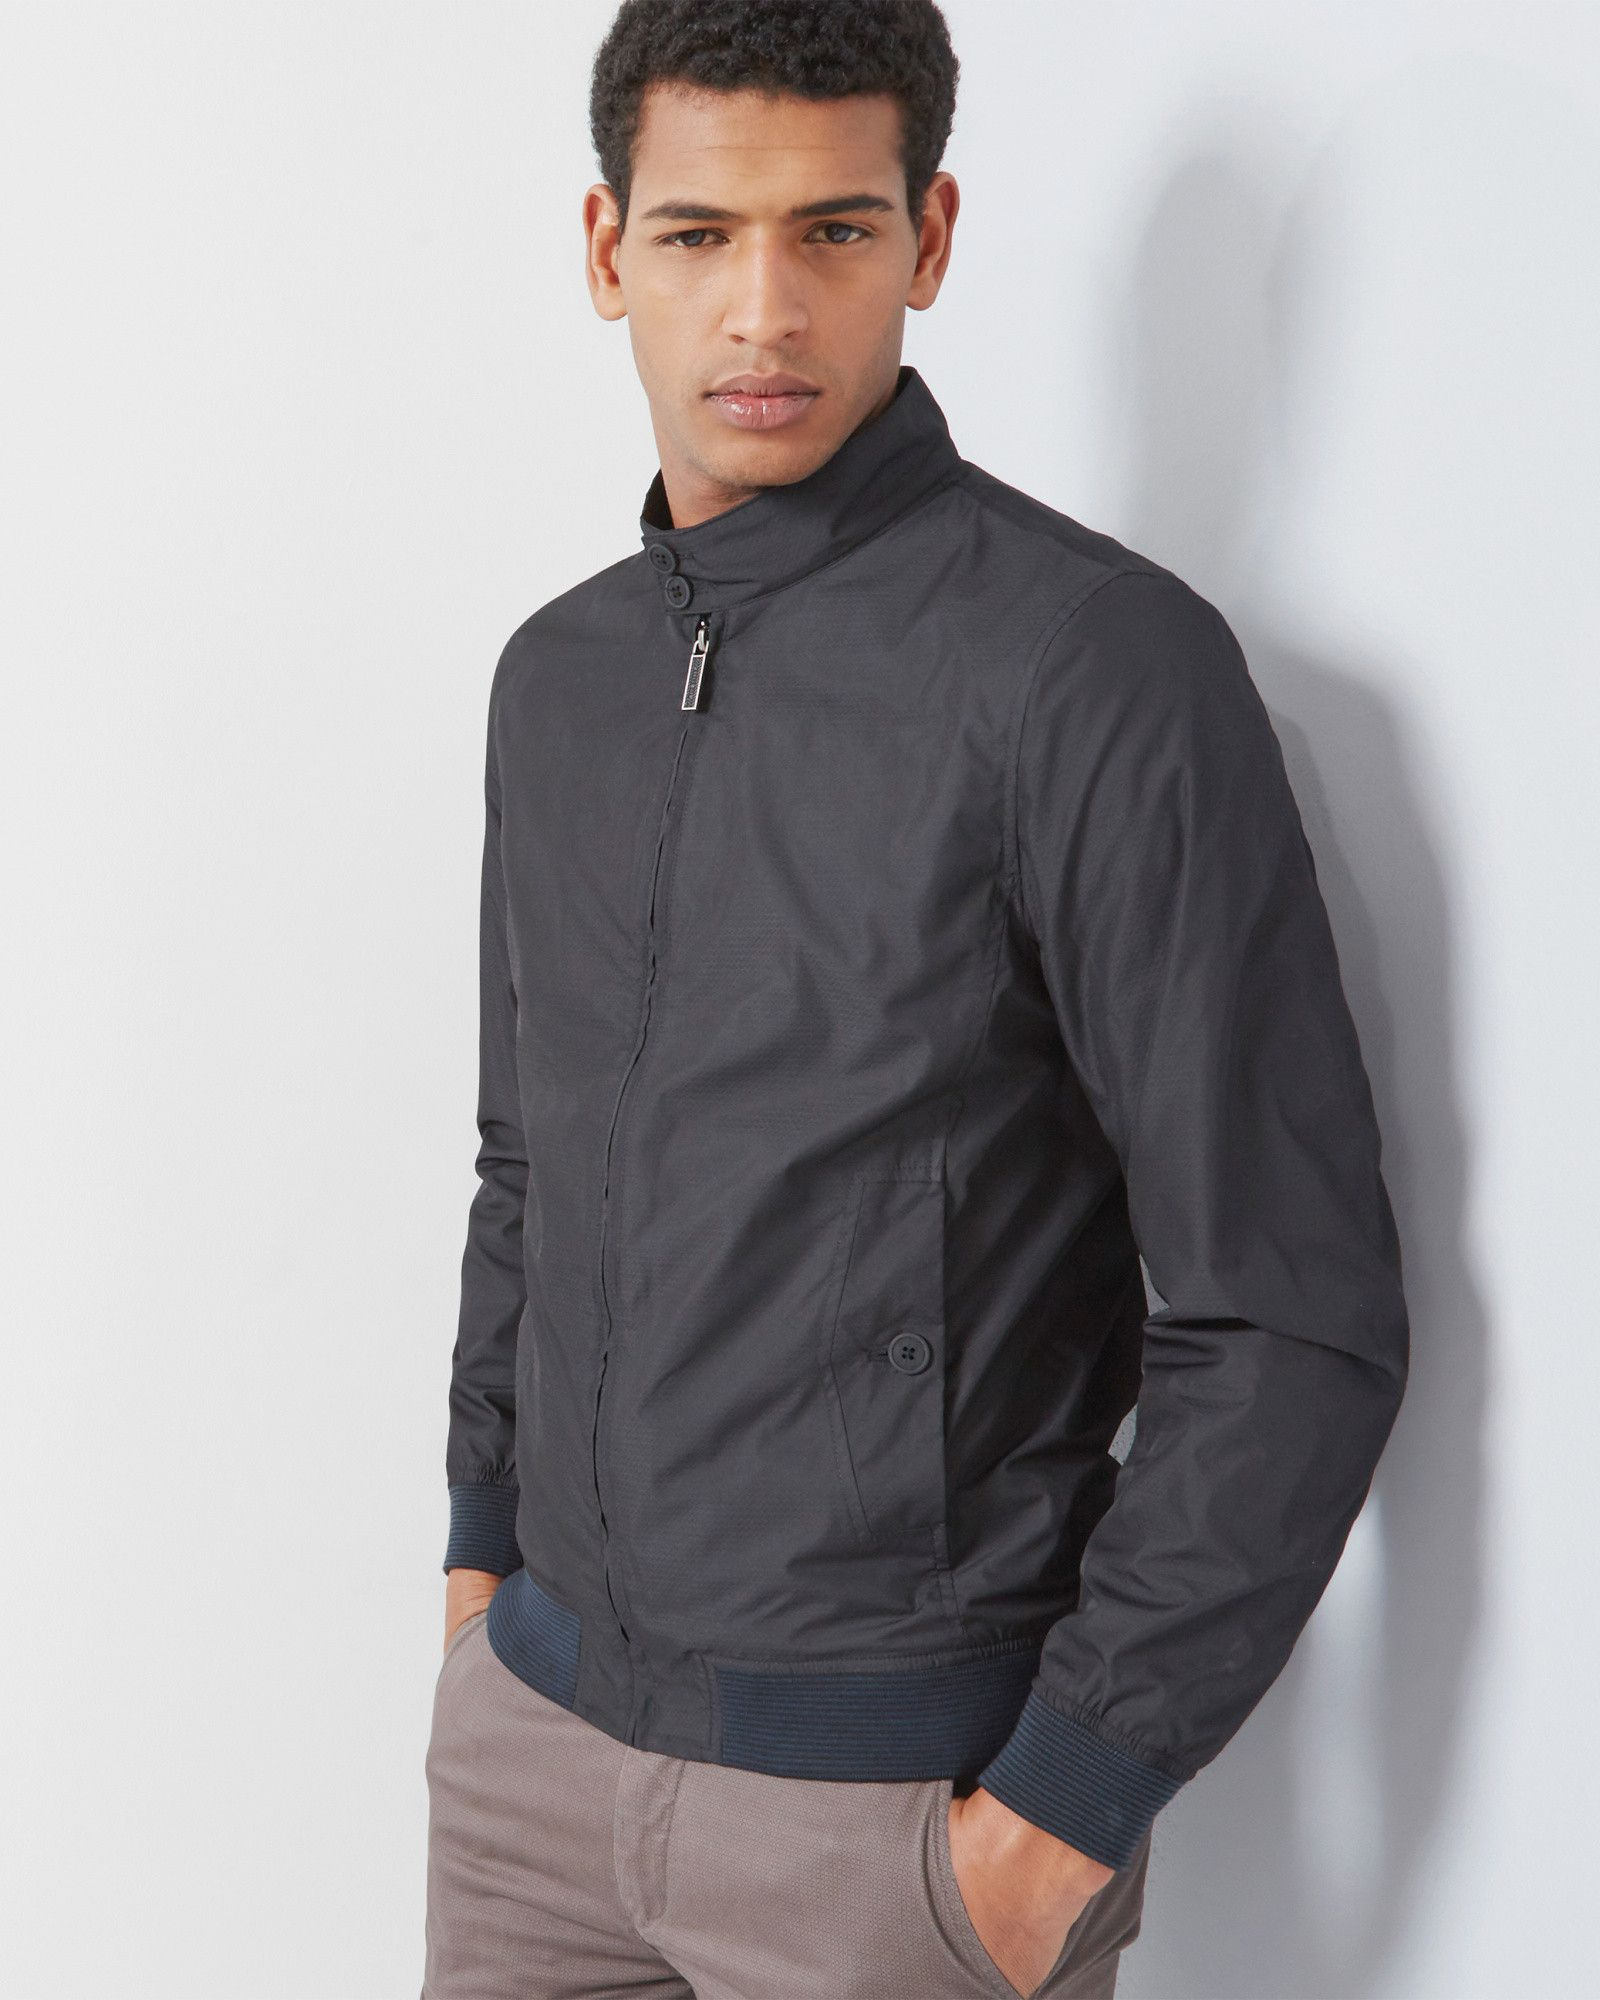 145c2cfe85b90d Shop your favourite men s jackets and coats from Ted Baker s carefully  curated range. Bomber jacket - Black